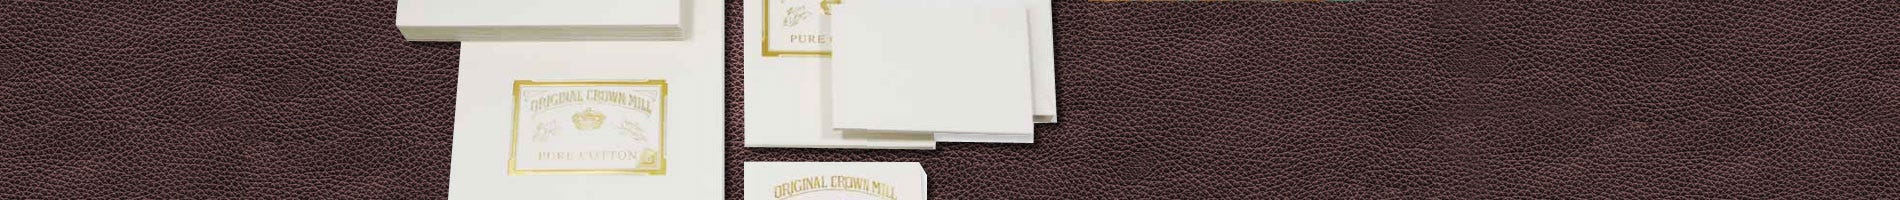 original crown mill cotton stationery